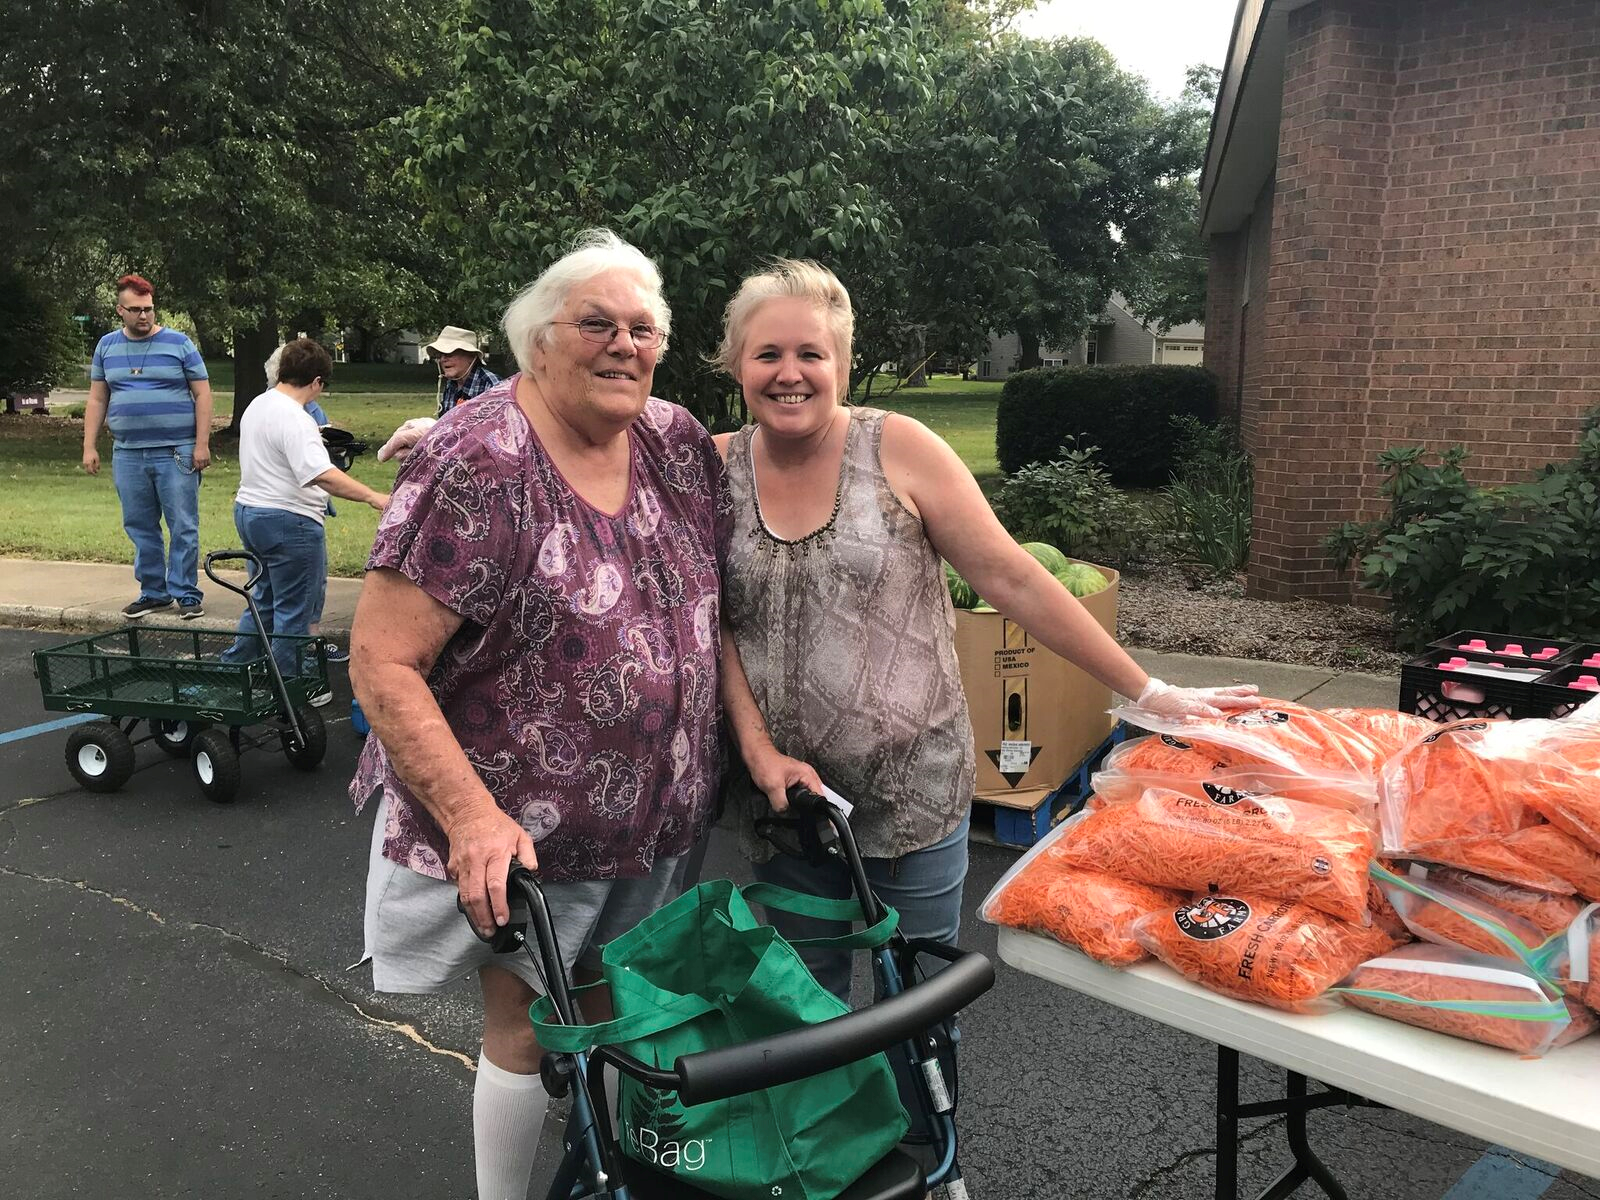 Nelda and her daughter smiling at a mobile food pantry